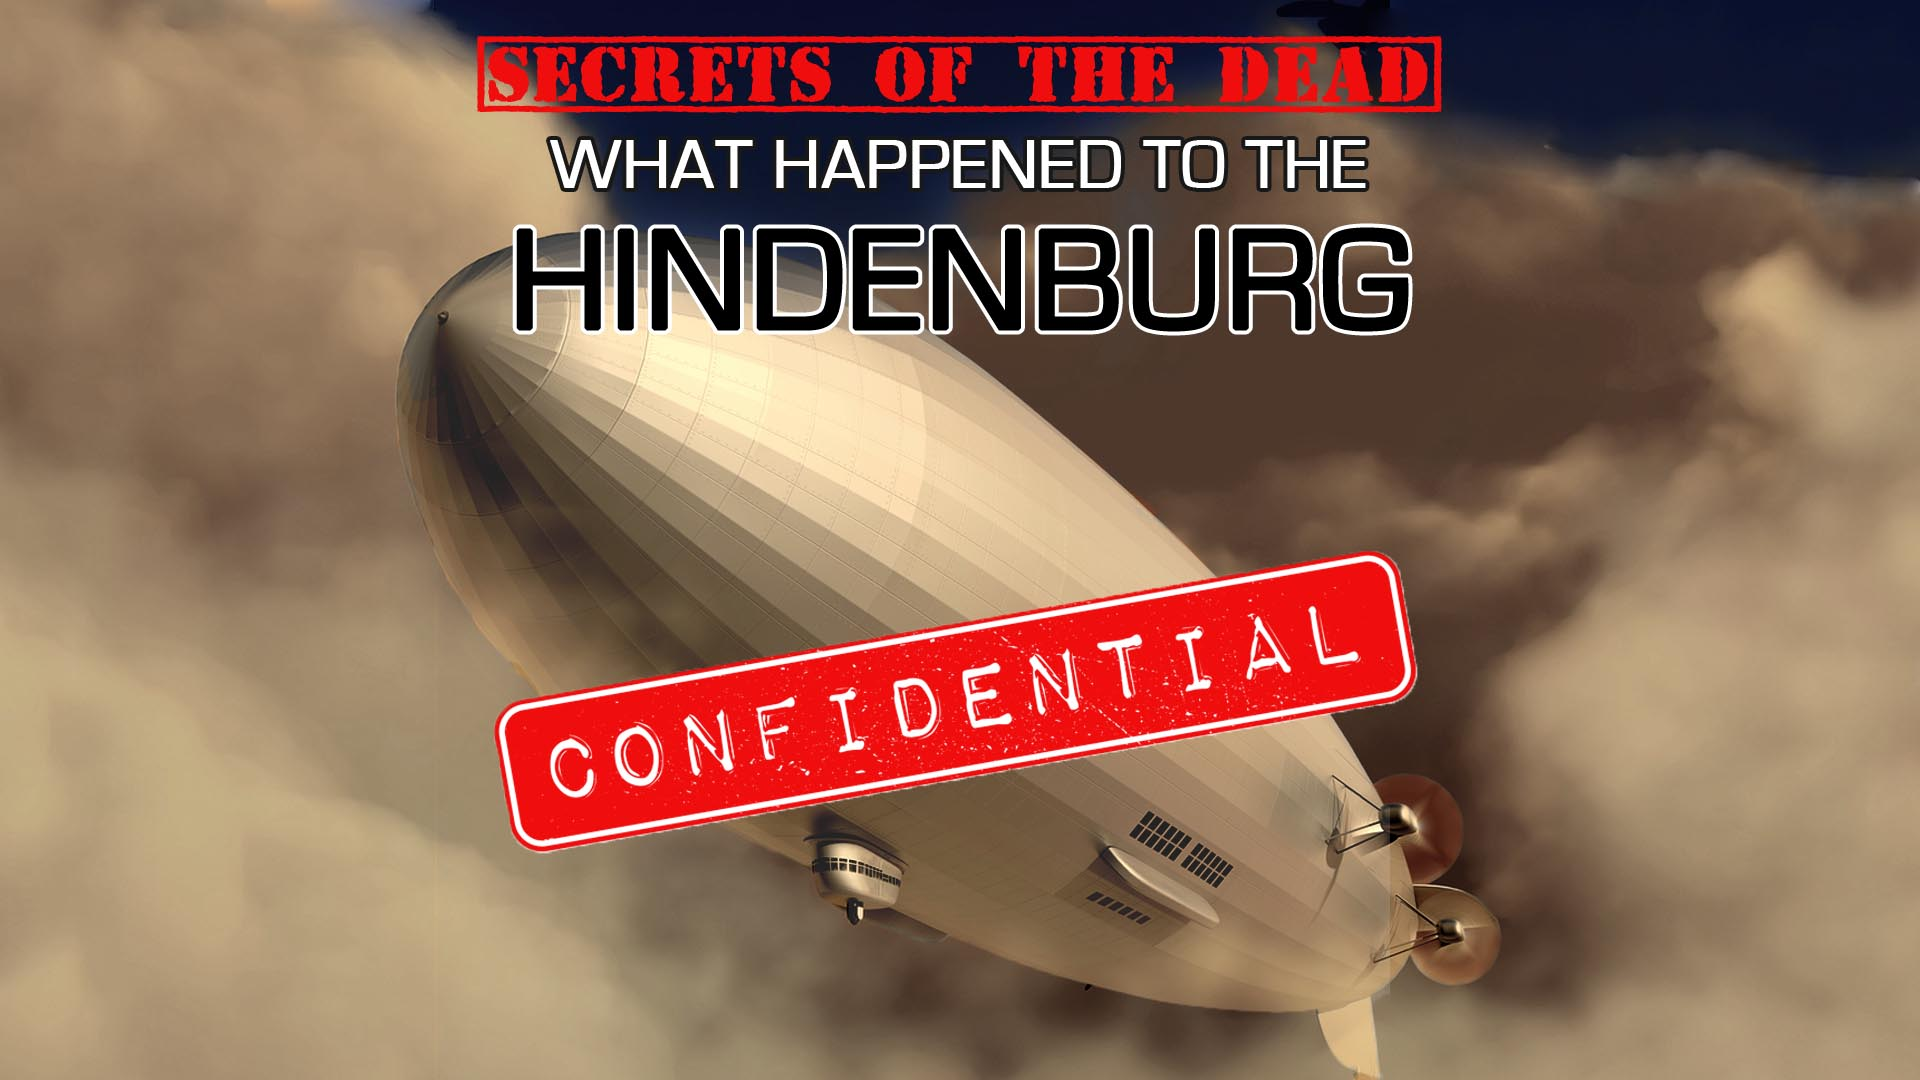 Secrets of the Dead: What Happened to the Hindenburg -